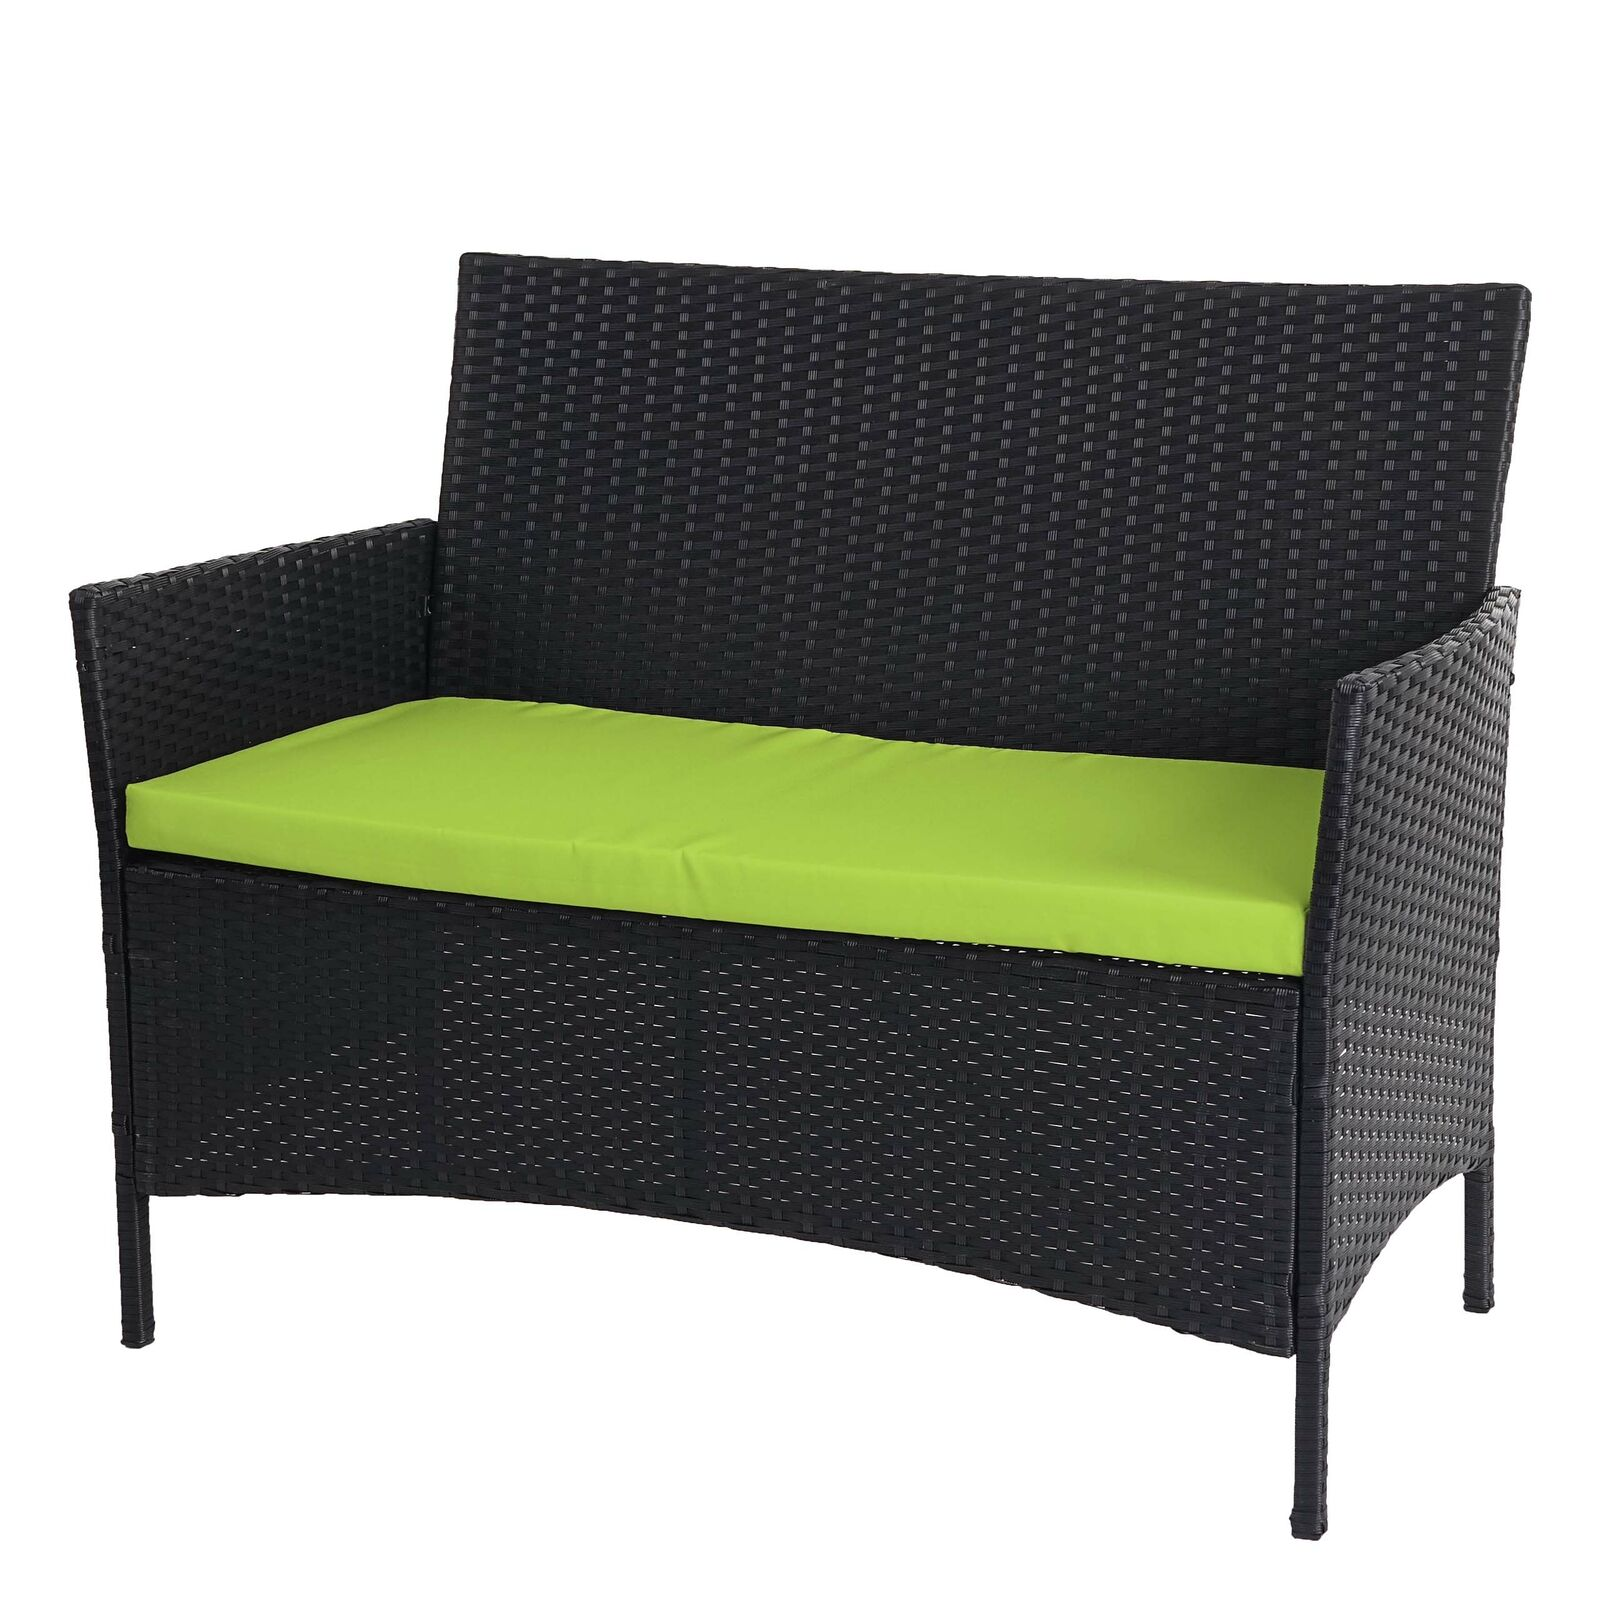 poly rattan gartenbank hamar sitzbank bank anthrazit kissen gr n eur 72 99 picclick it. Black Bedroom Furniture Sets. Home Design Ideas